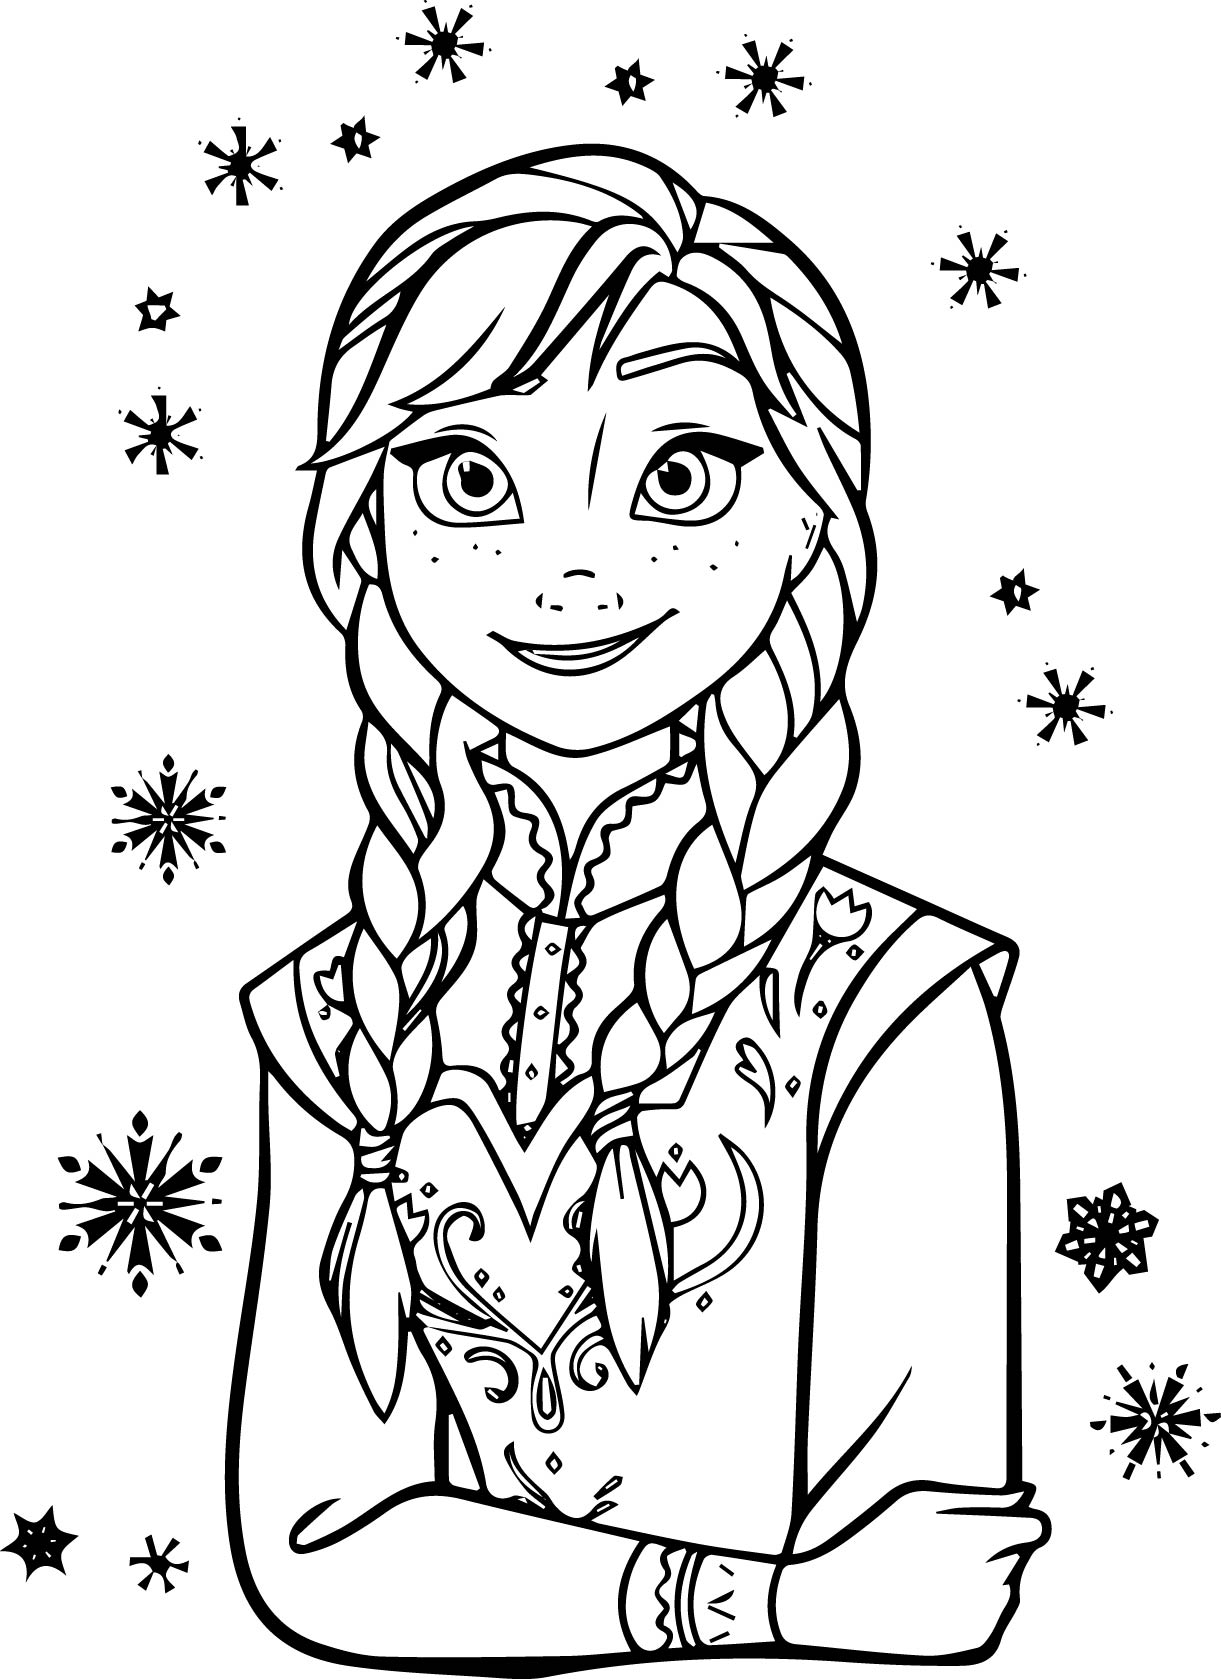 Anna Coloring Pages Enchanting Anna Listen Coloring Page  Wecoloringpage Design Ideas